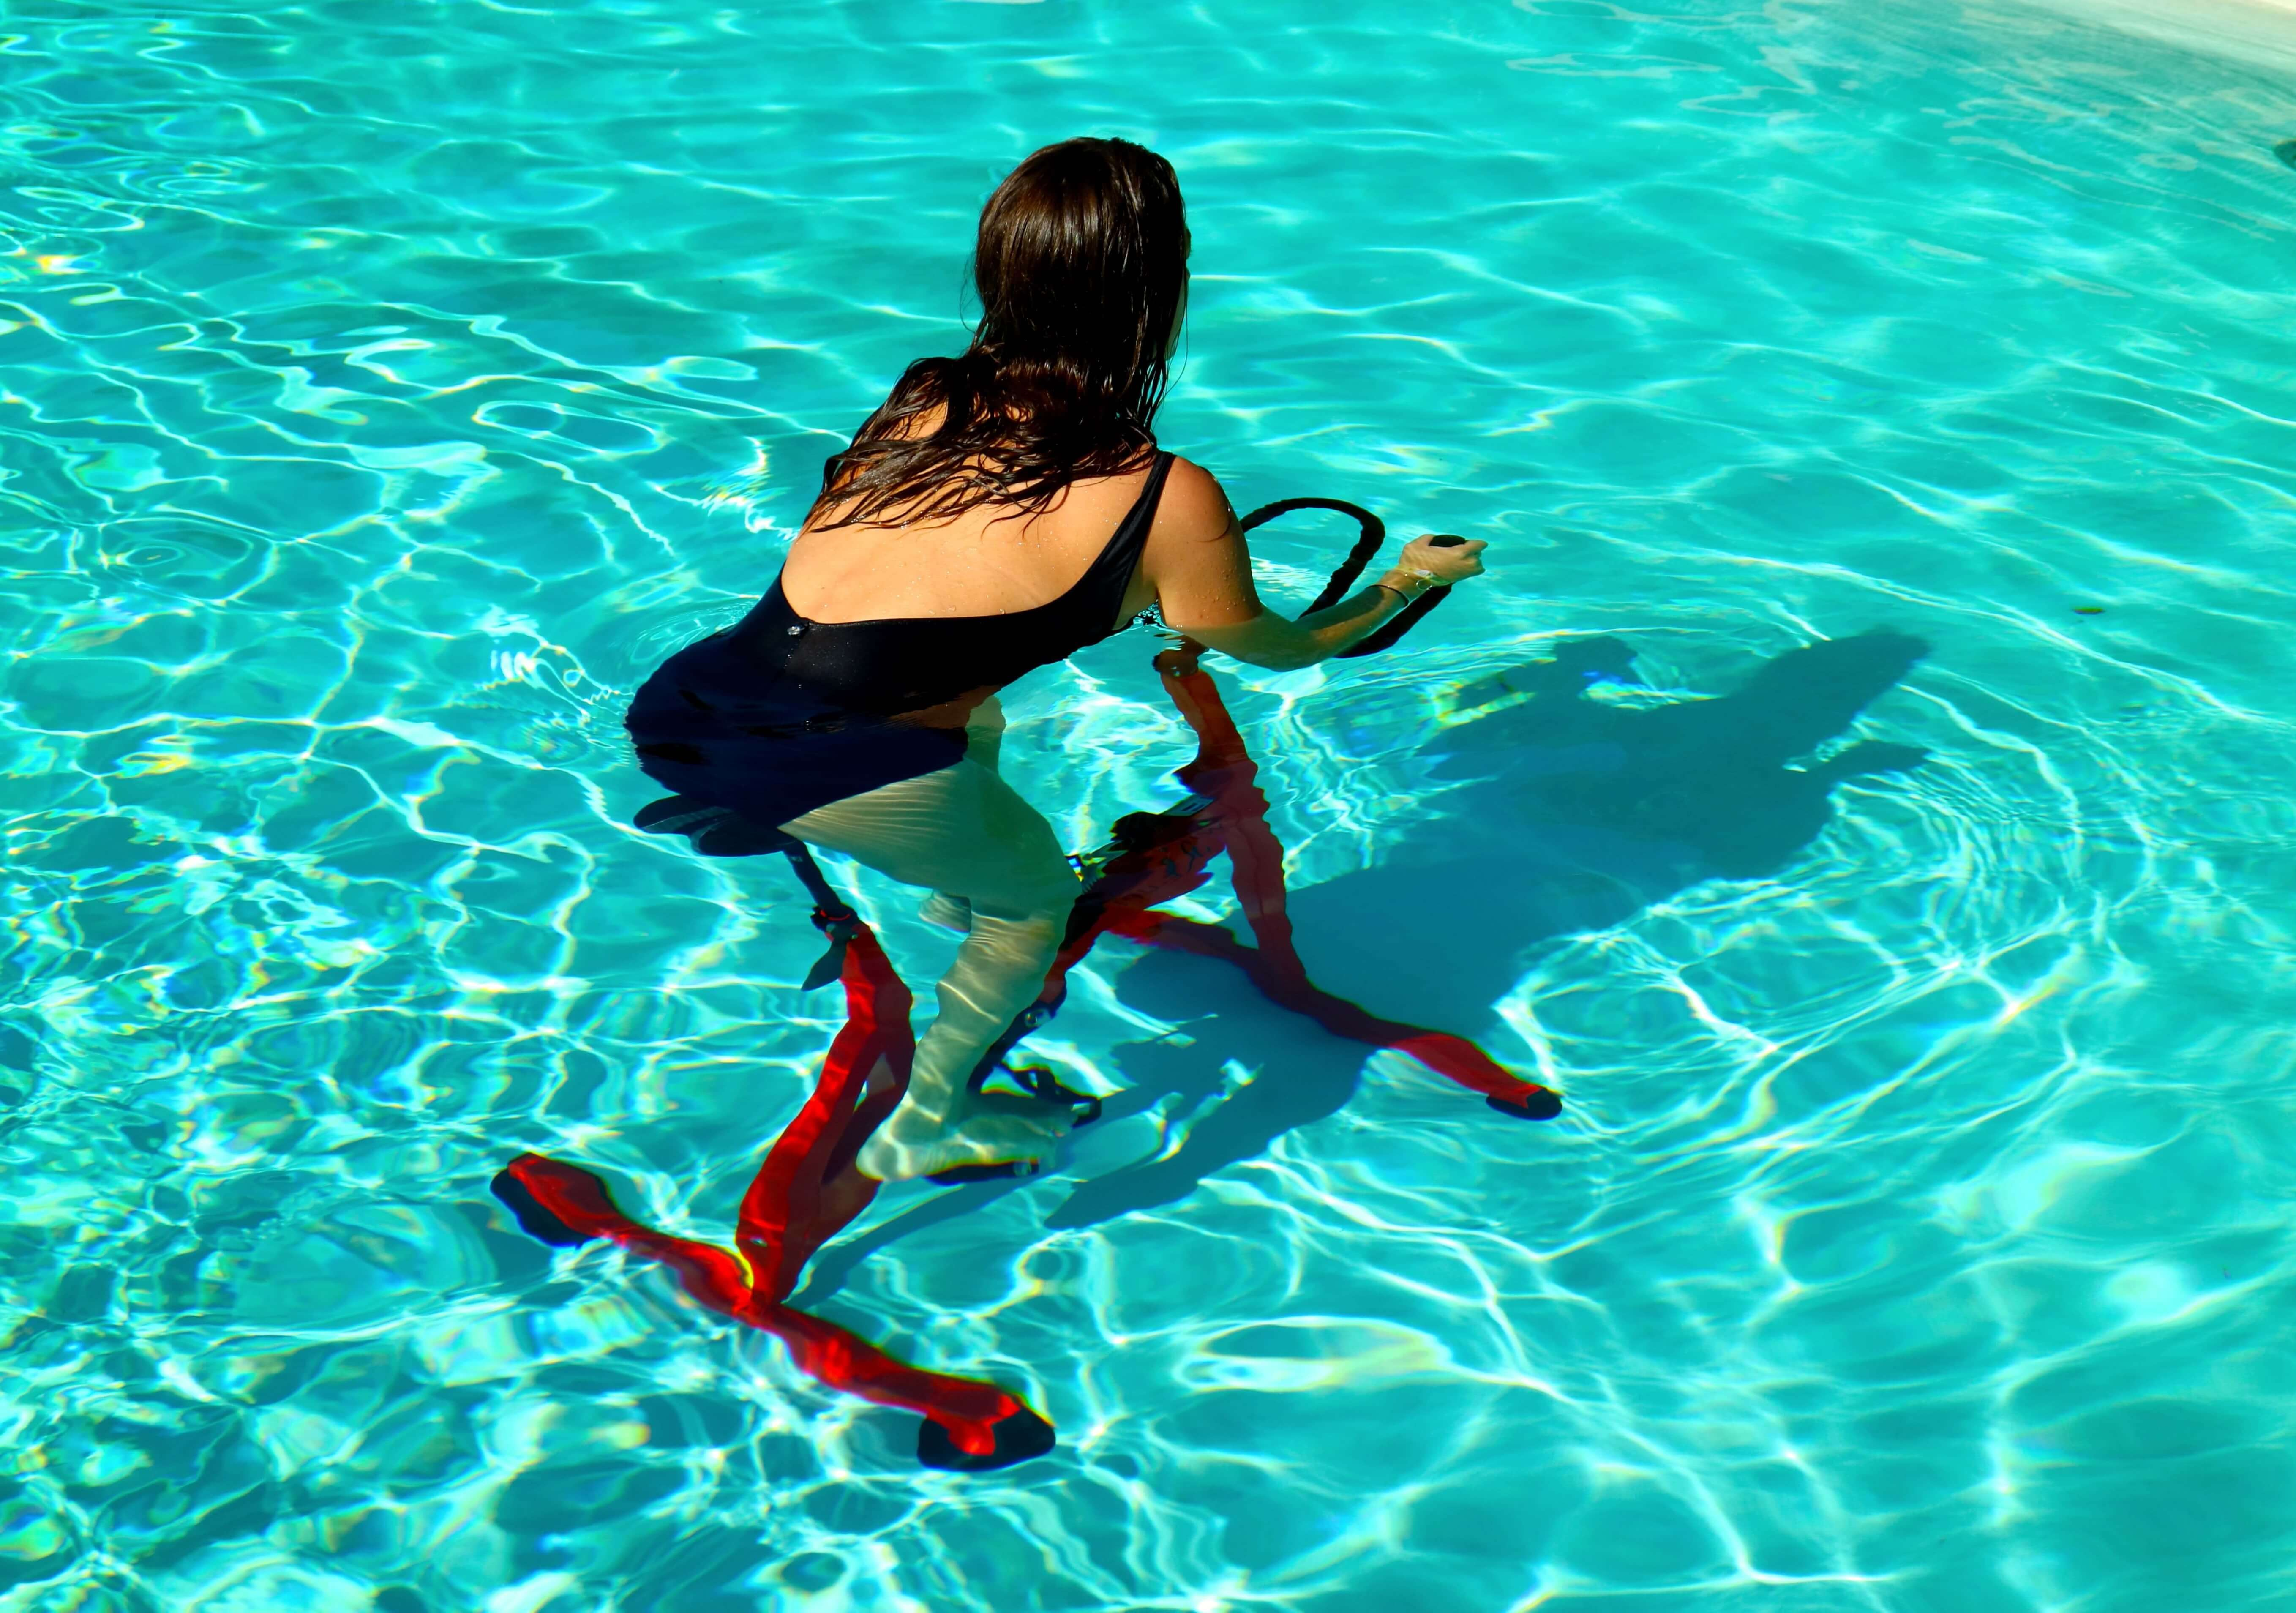 Aquabike In Waist Deep Water Because You 39 Ll Be Using Resistance The Exercise Will Help Burn Calories While Providing Other Health Benefits